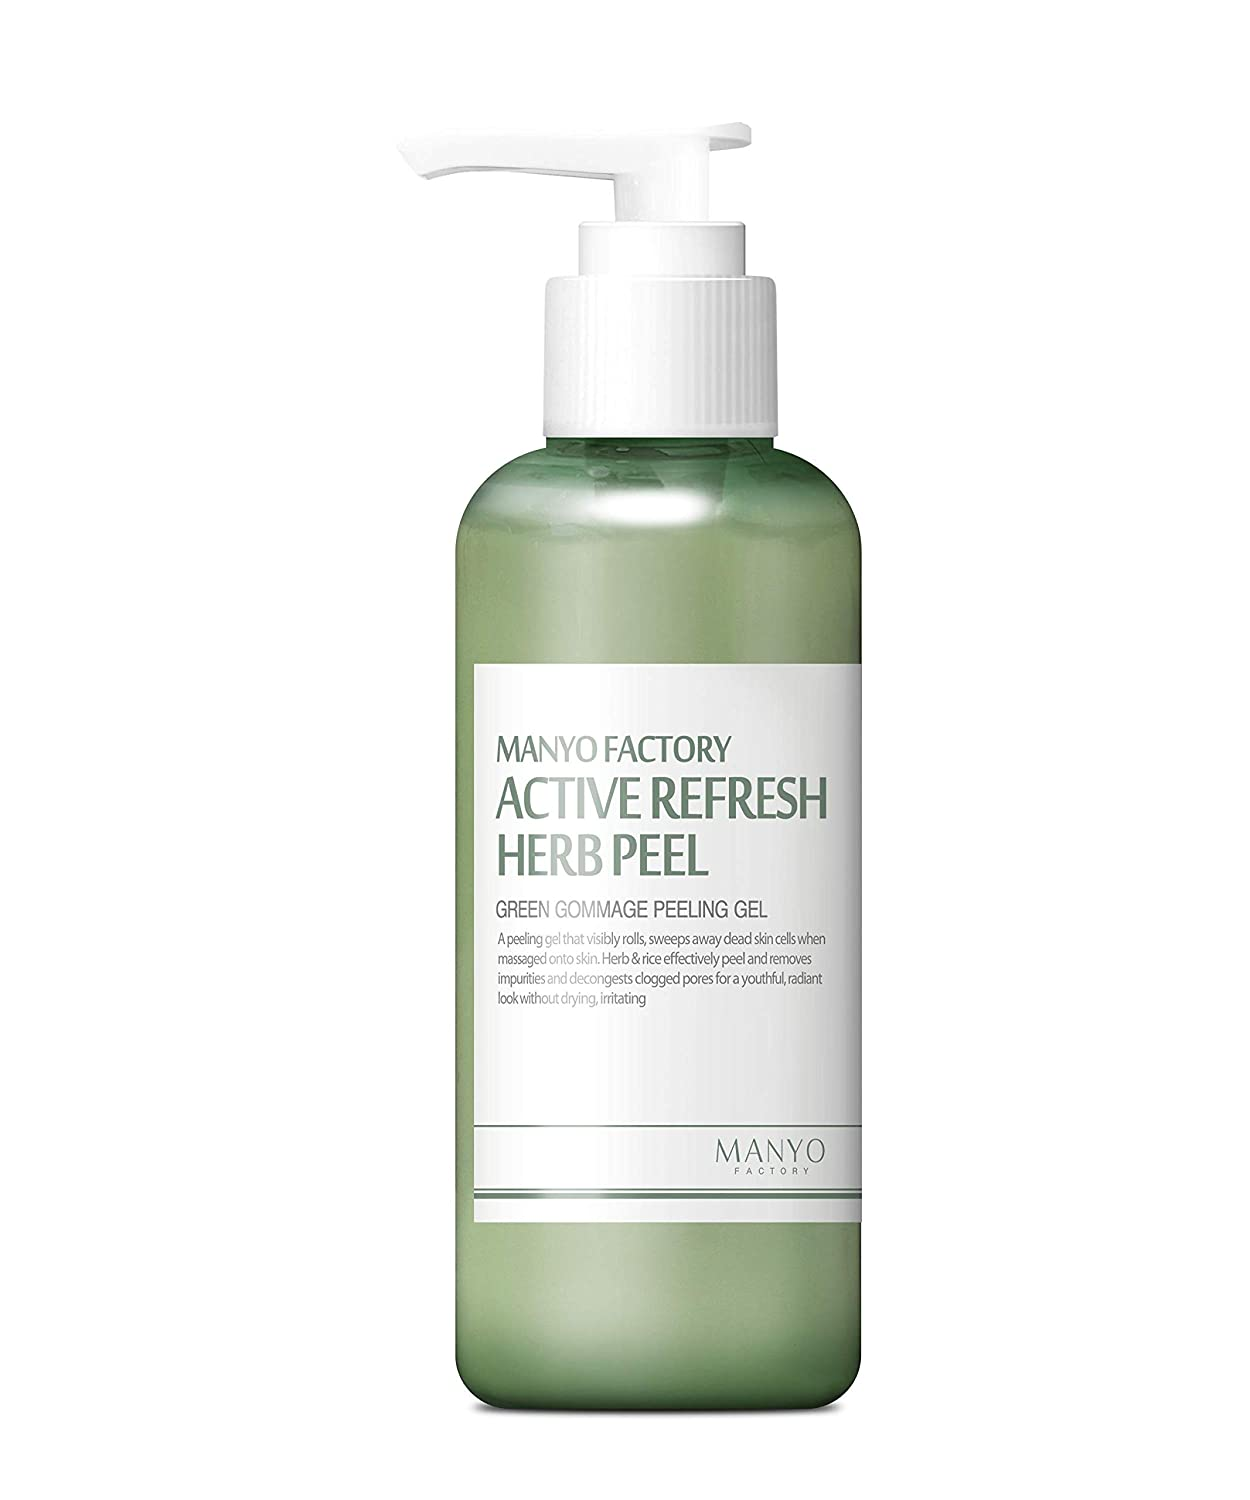 Manyo Factory Active Refresh Herb Peel Icure 98218